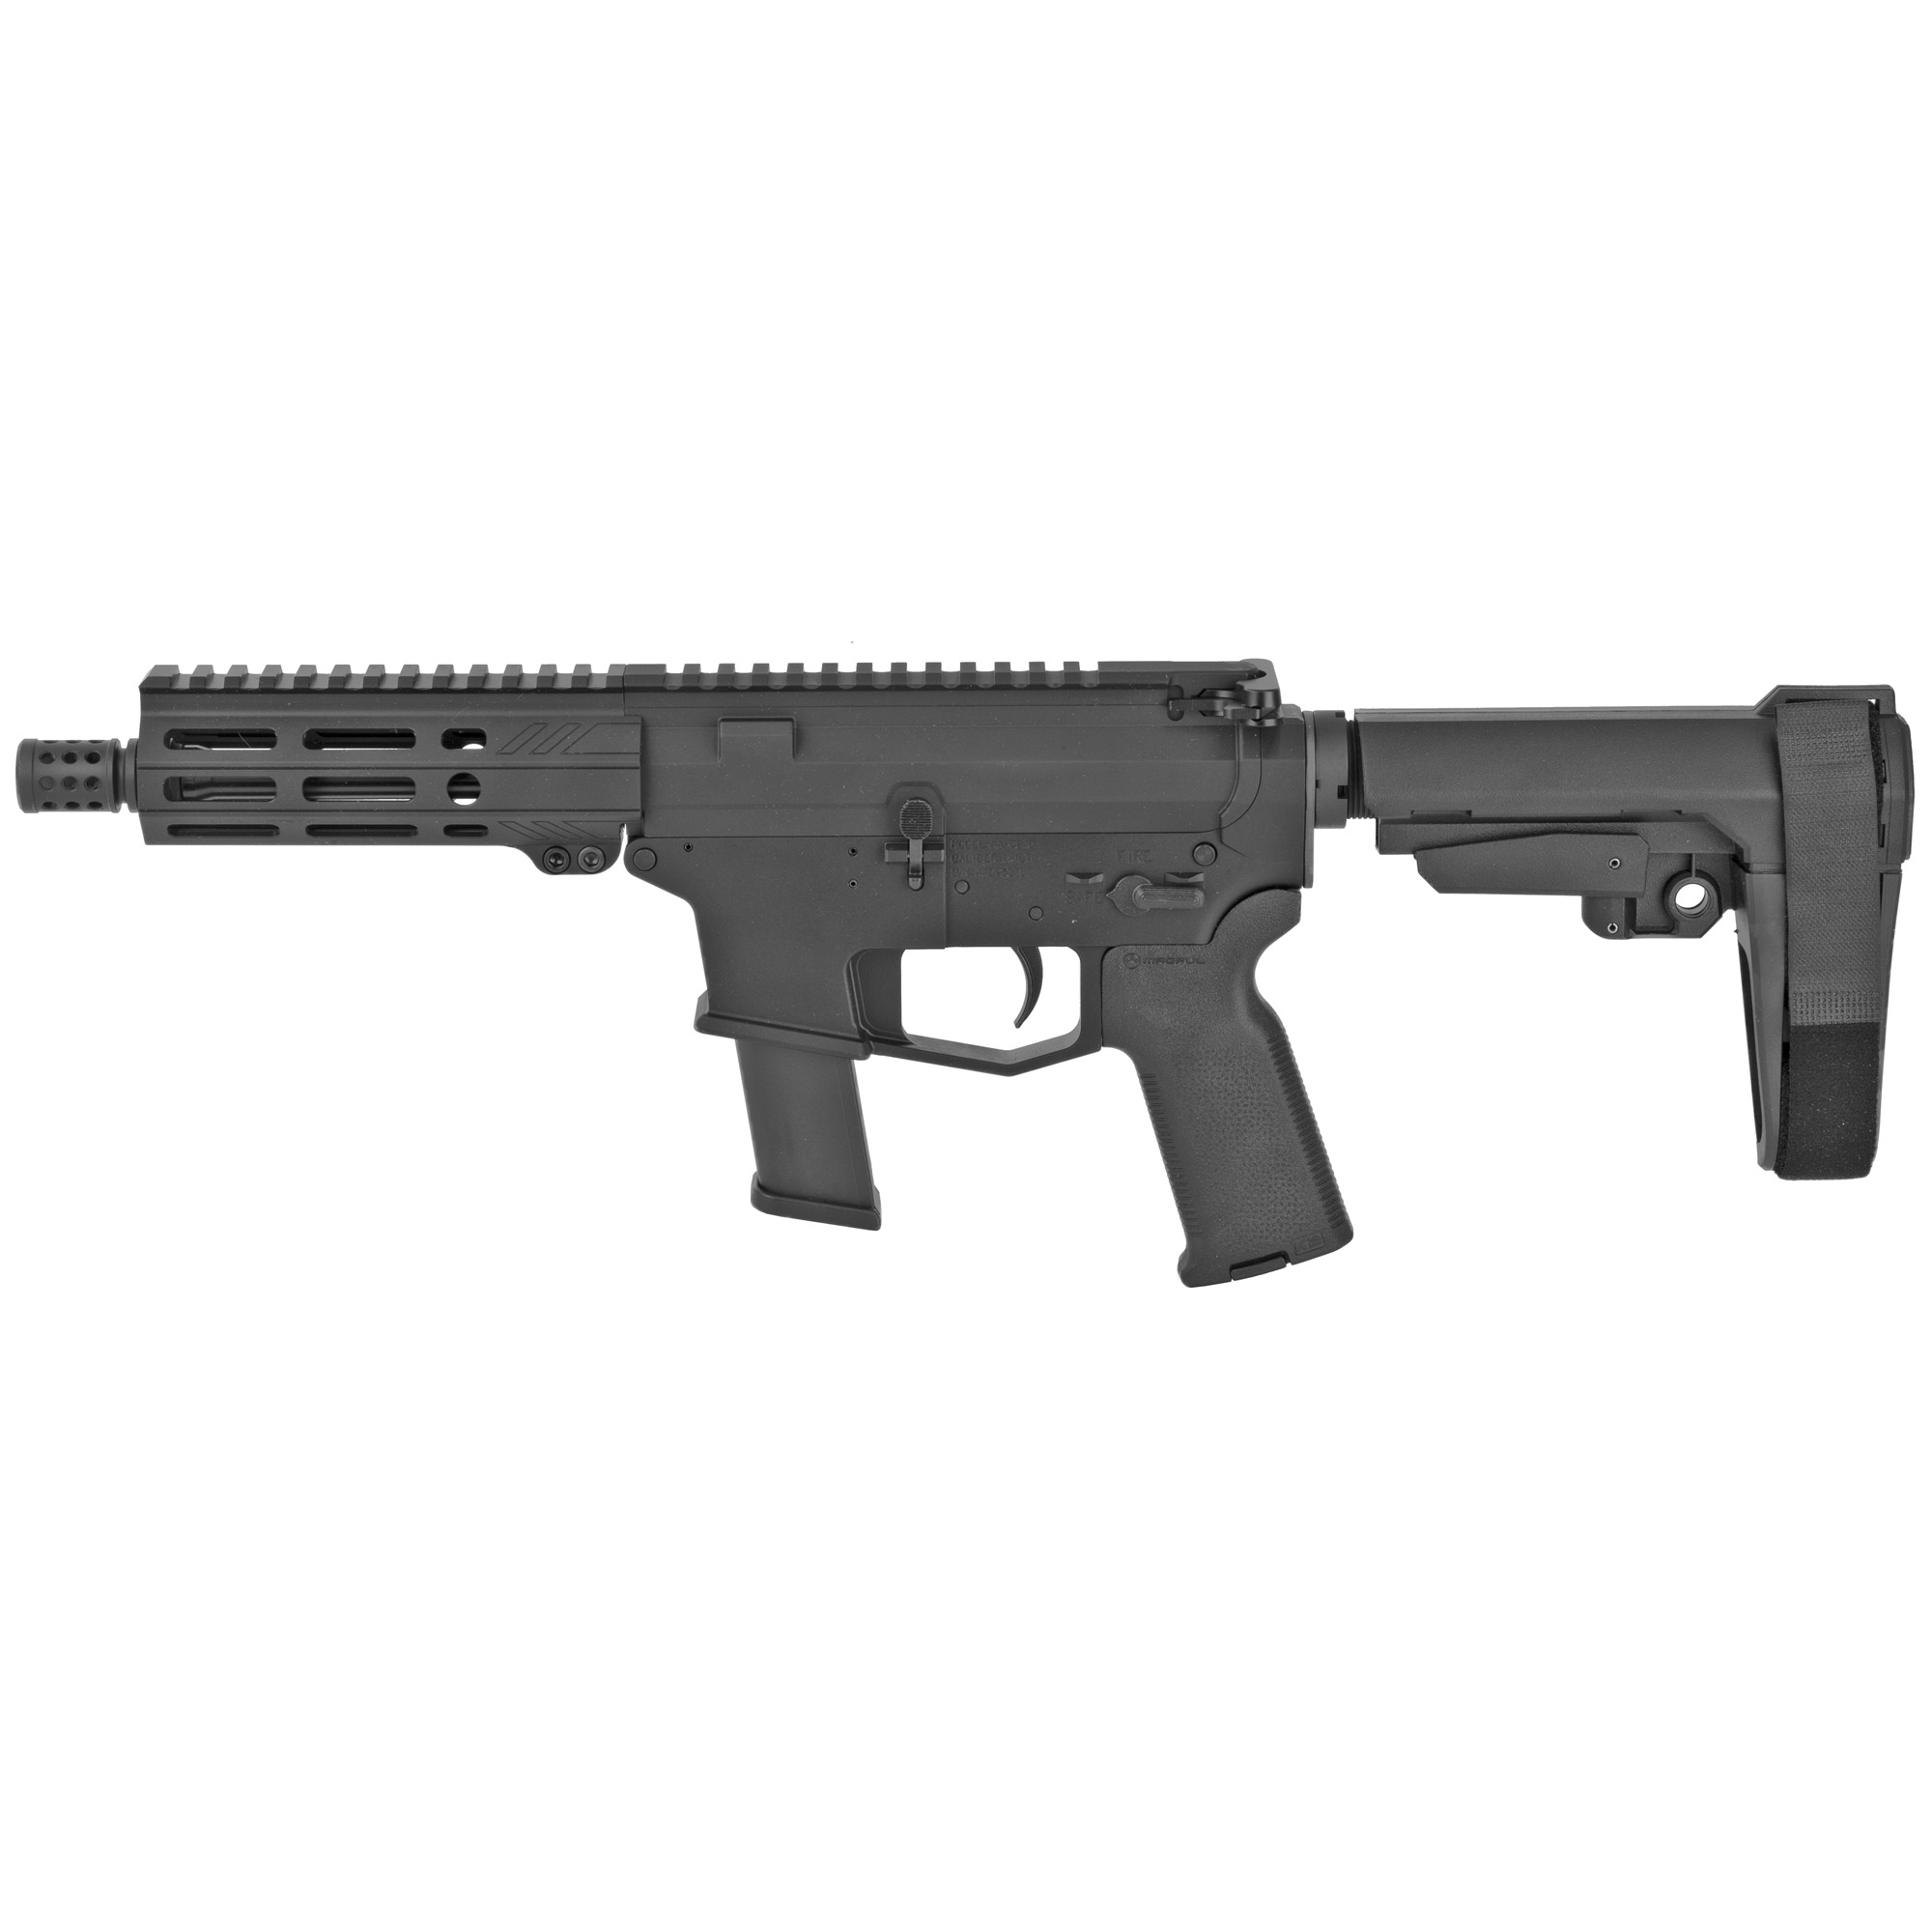 """The UDP-9 Pistol with SB Tactical SBA3 stabilizing brace is a compact AR-9 style firearm chambered in 9mm and fed with GLOCK(R) magazines. It features last round bolt hold open"""" an integrated trigger guard"""" flared magwell and a 5.5"""" free float M-LOK hand guard with a modern"""" ergonomic"""" 7 side design. Machined from 7075-T6 aluminum the UDP-9 comes with a lifetime warranty. Includes one GLOCK(R) OEM 9mm magazine."""